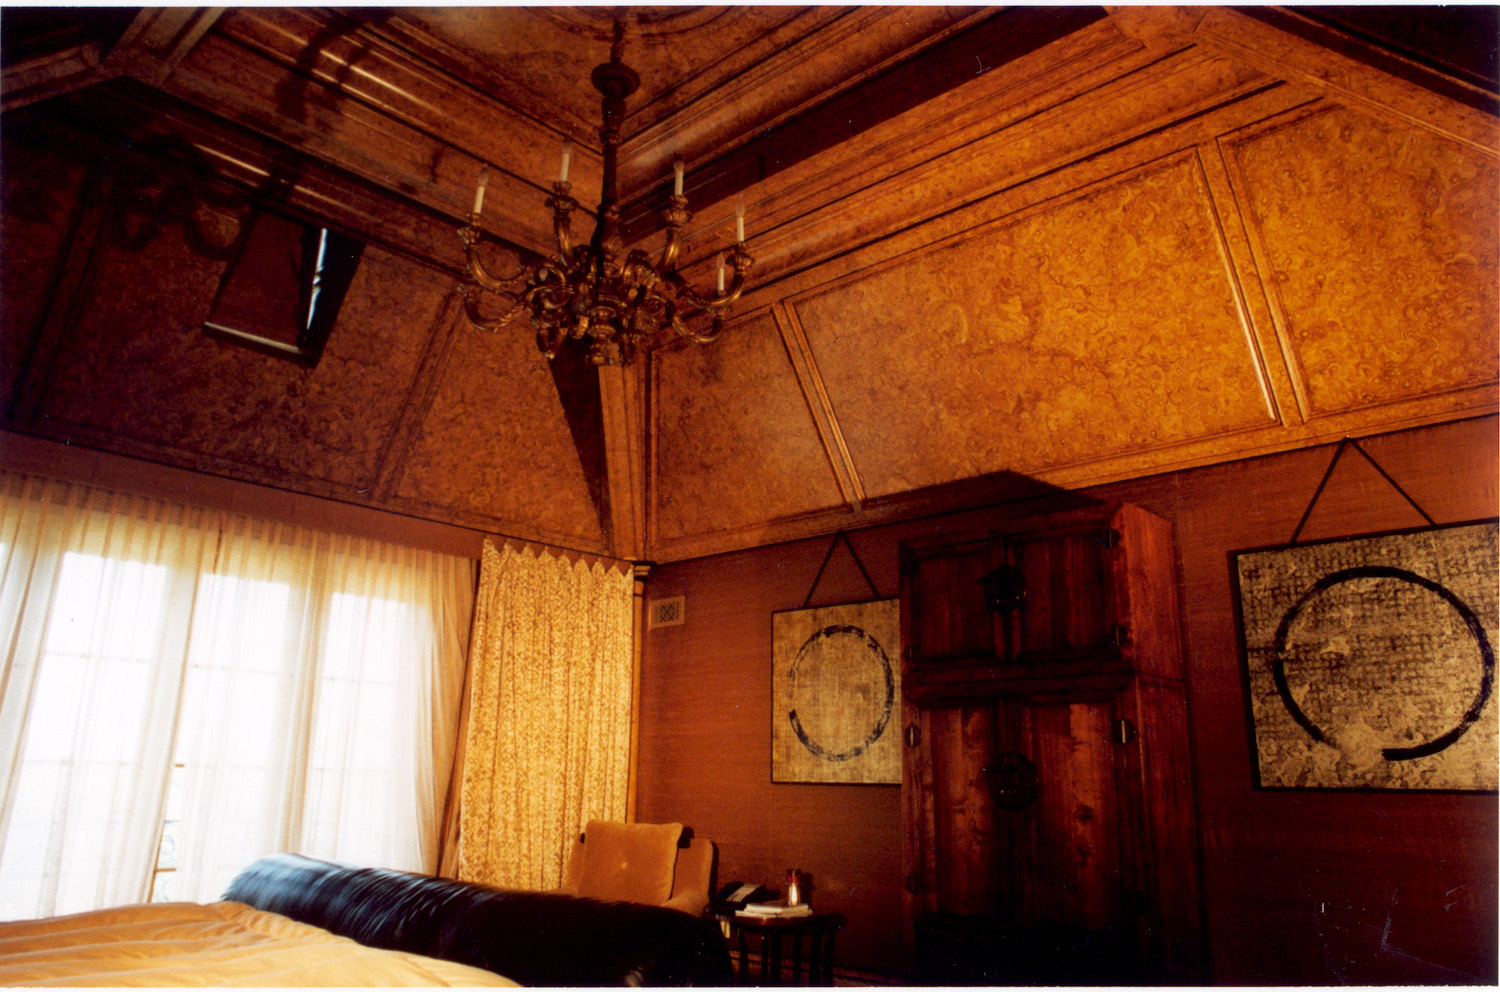 The Burl Ceiling   We were a crew of two up on scaffolds painting this entire ceiling for a couple weeks. We used oil-based paint, applied several glazes, shelack in between and sealed with varnish. This master bedroom located in a mansion in Englewood, New Jersey.